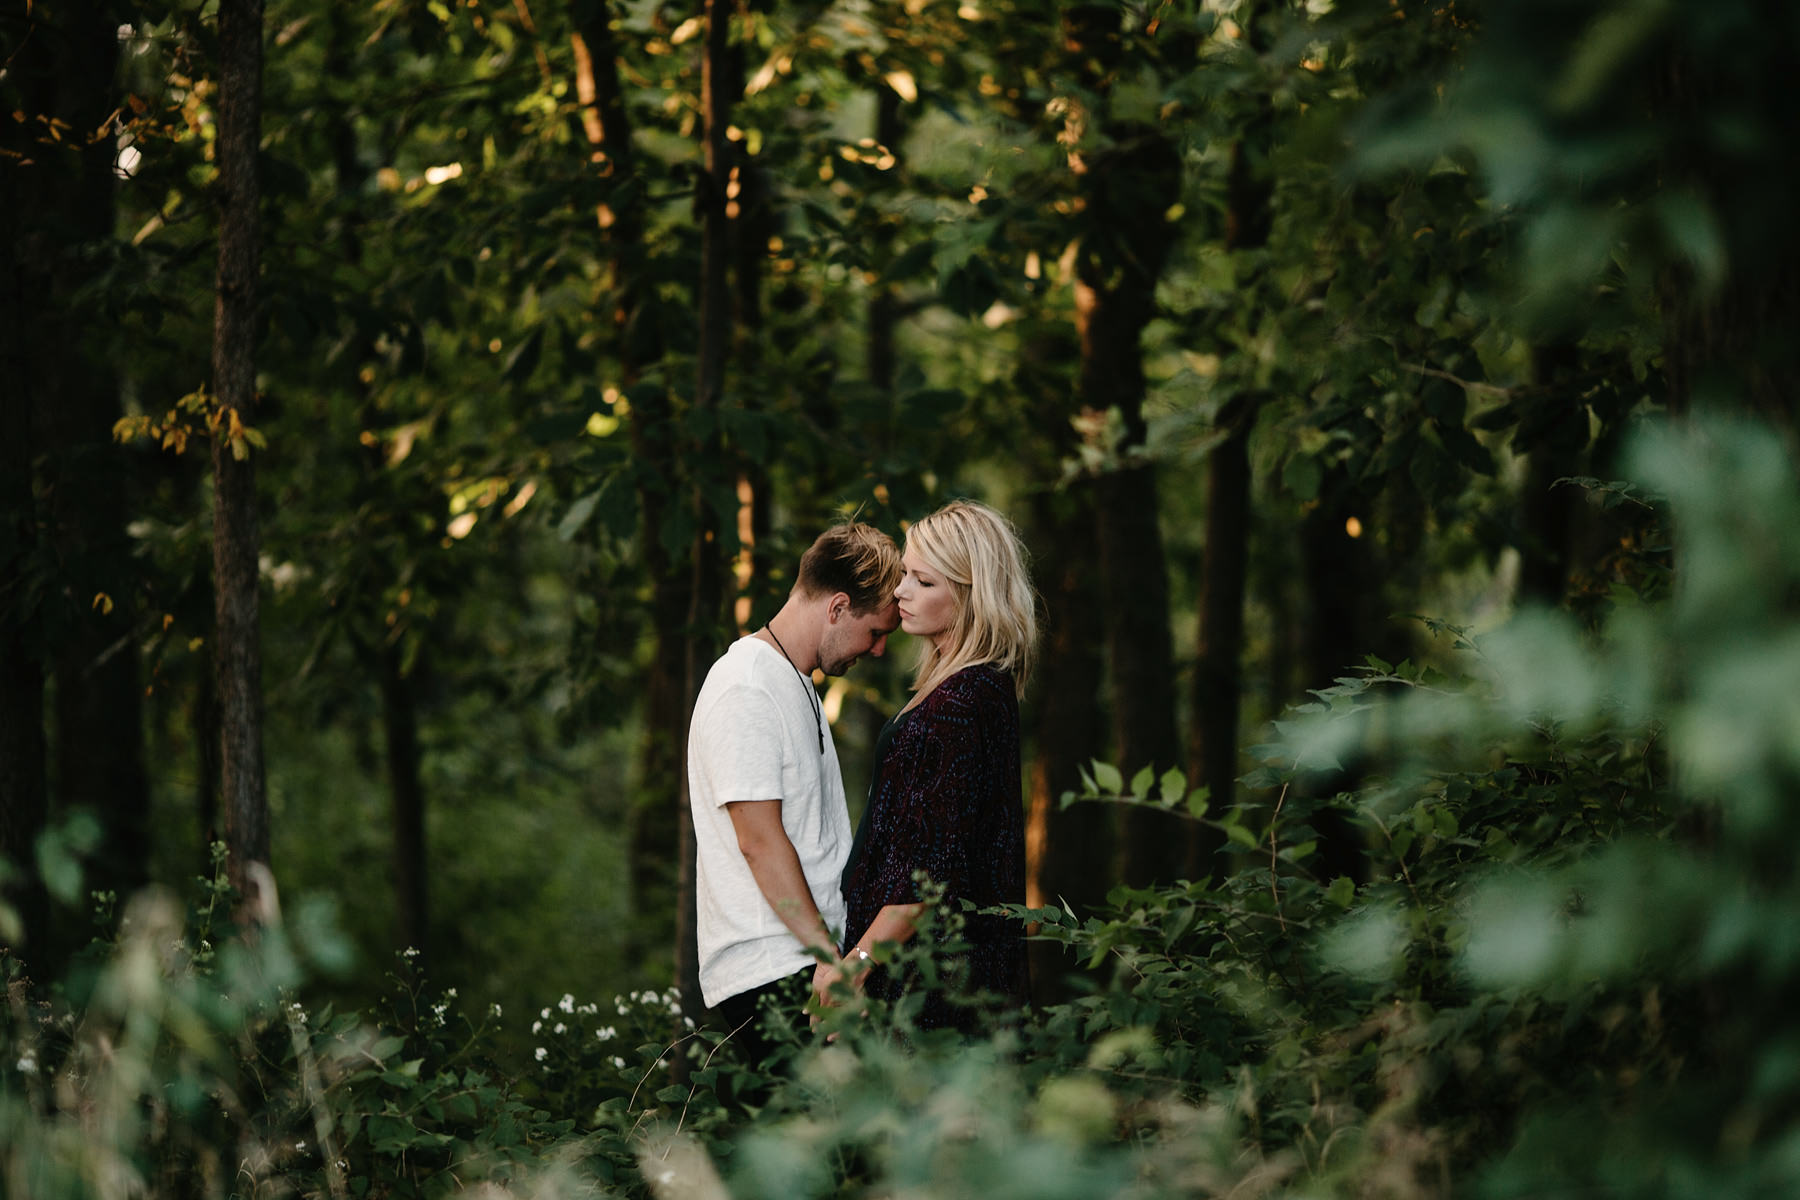 173_Shawnee Mission Park Summer Engagement Session Kansas City, Missouri_Kindling Wedding Photography.JPG